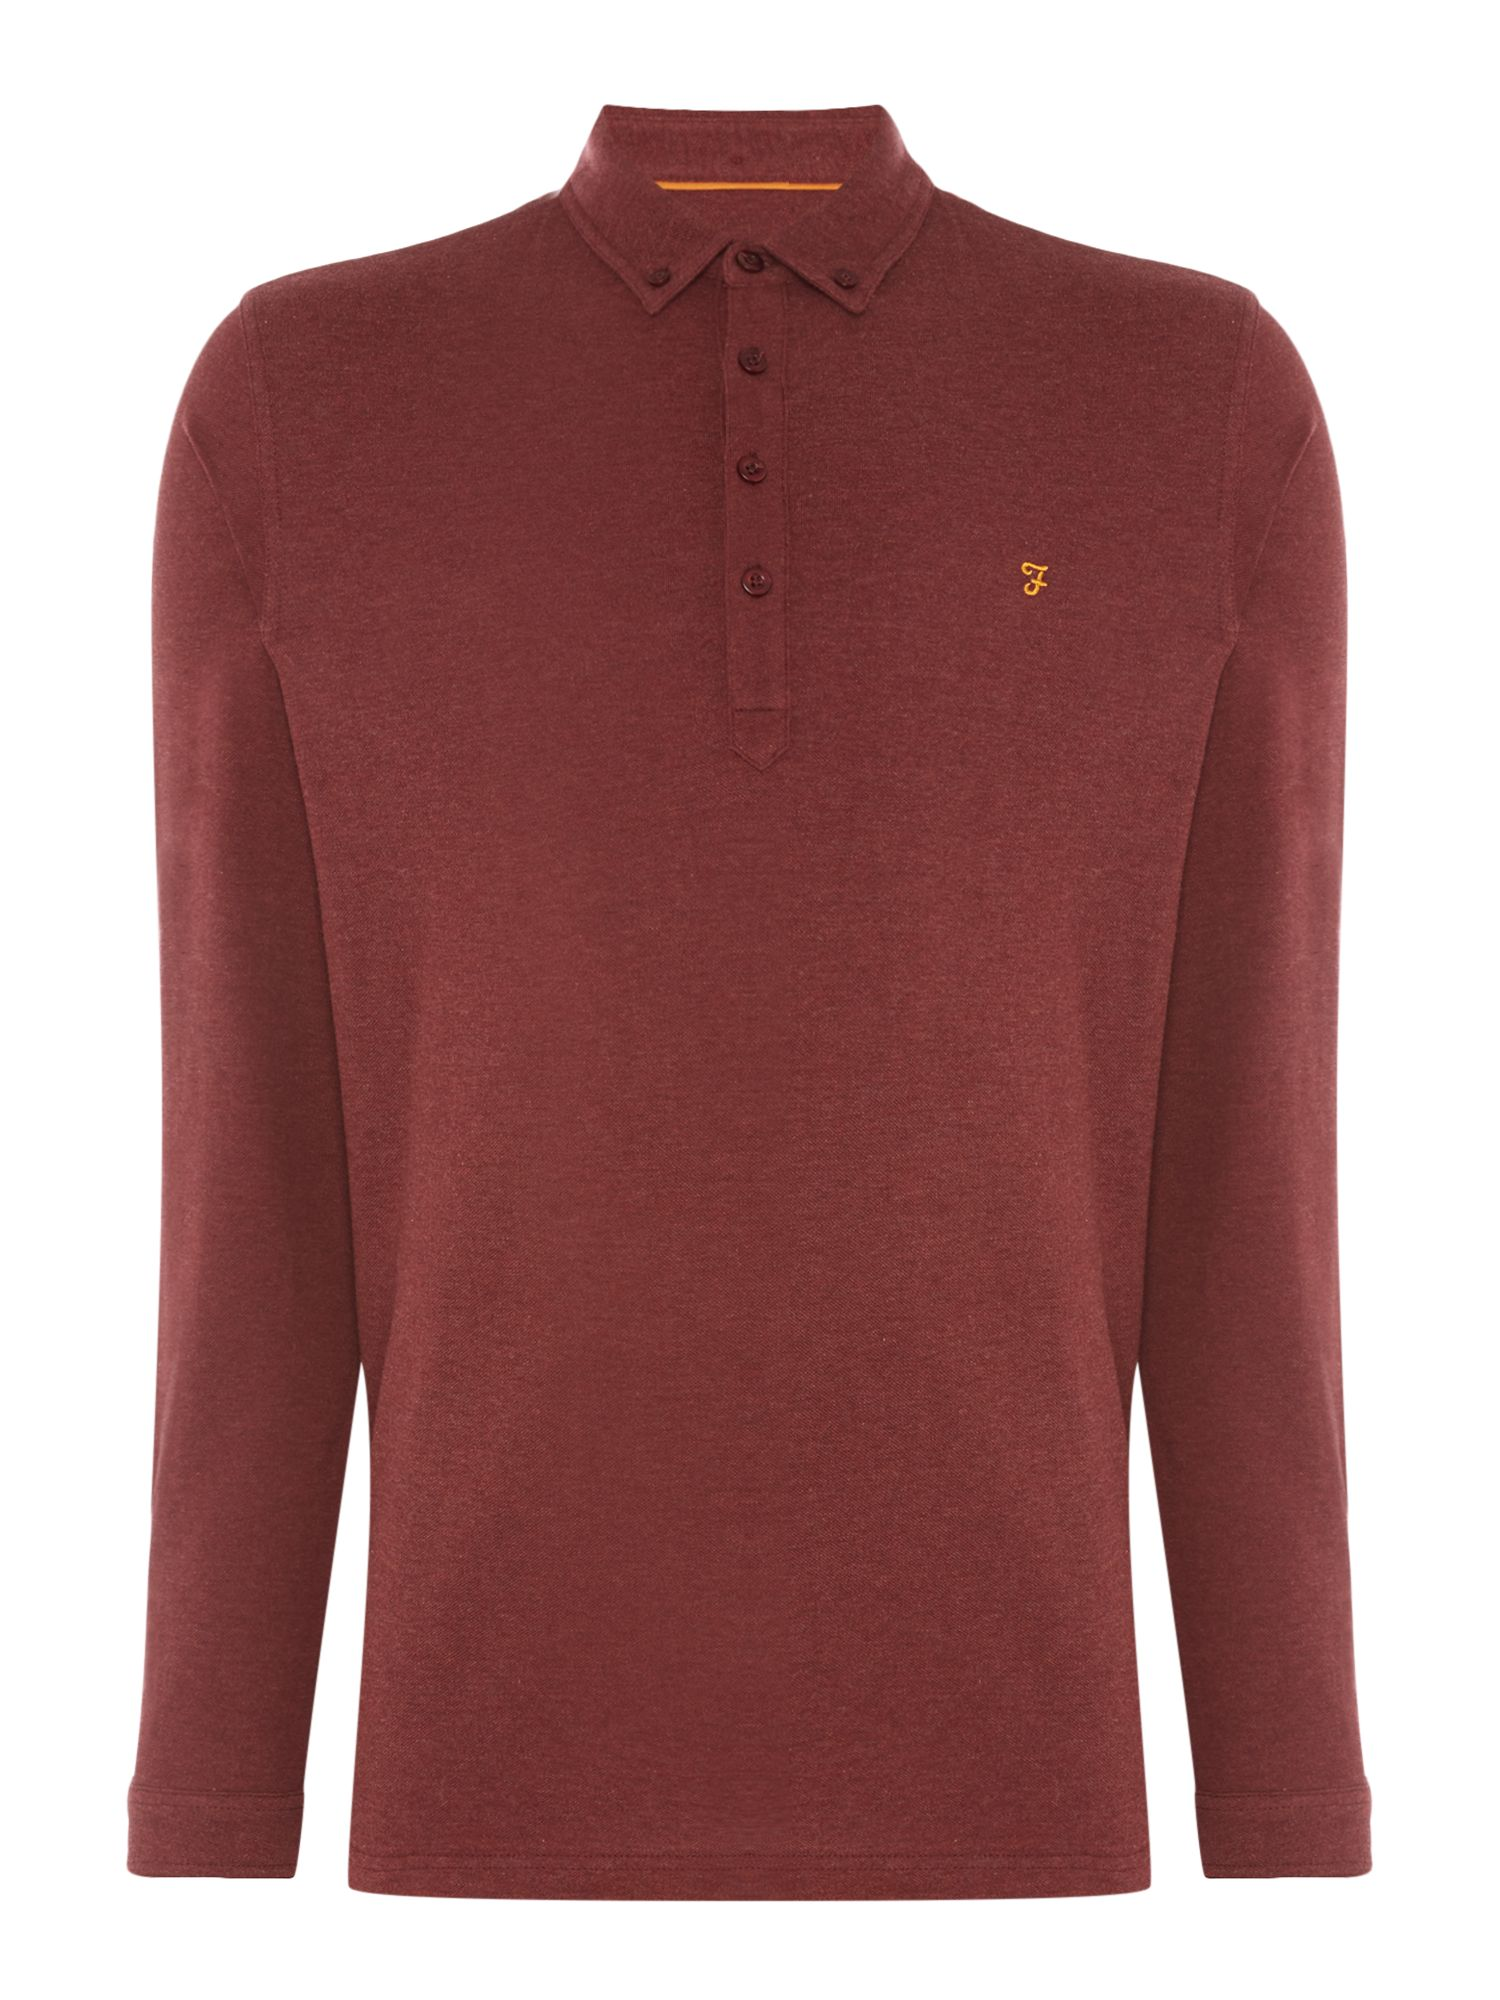 Men's Farah Long Sleeve Merriweather Polo, Red